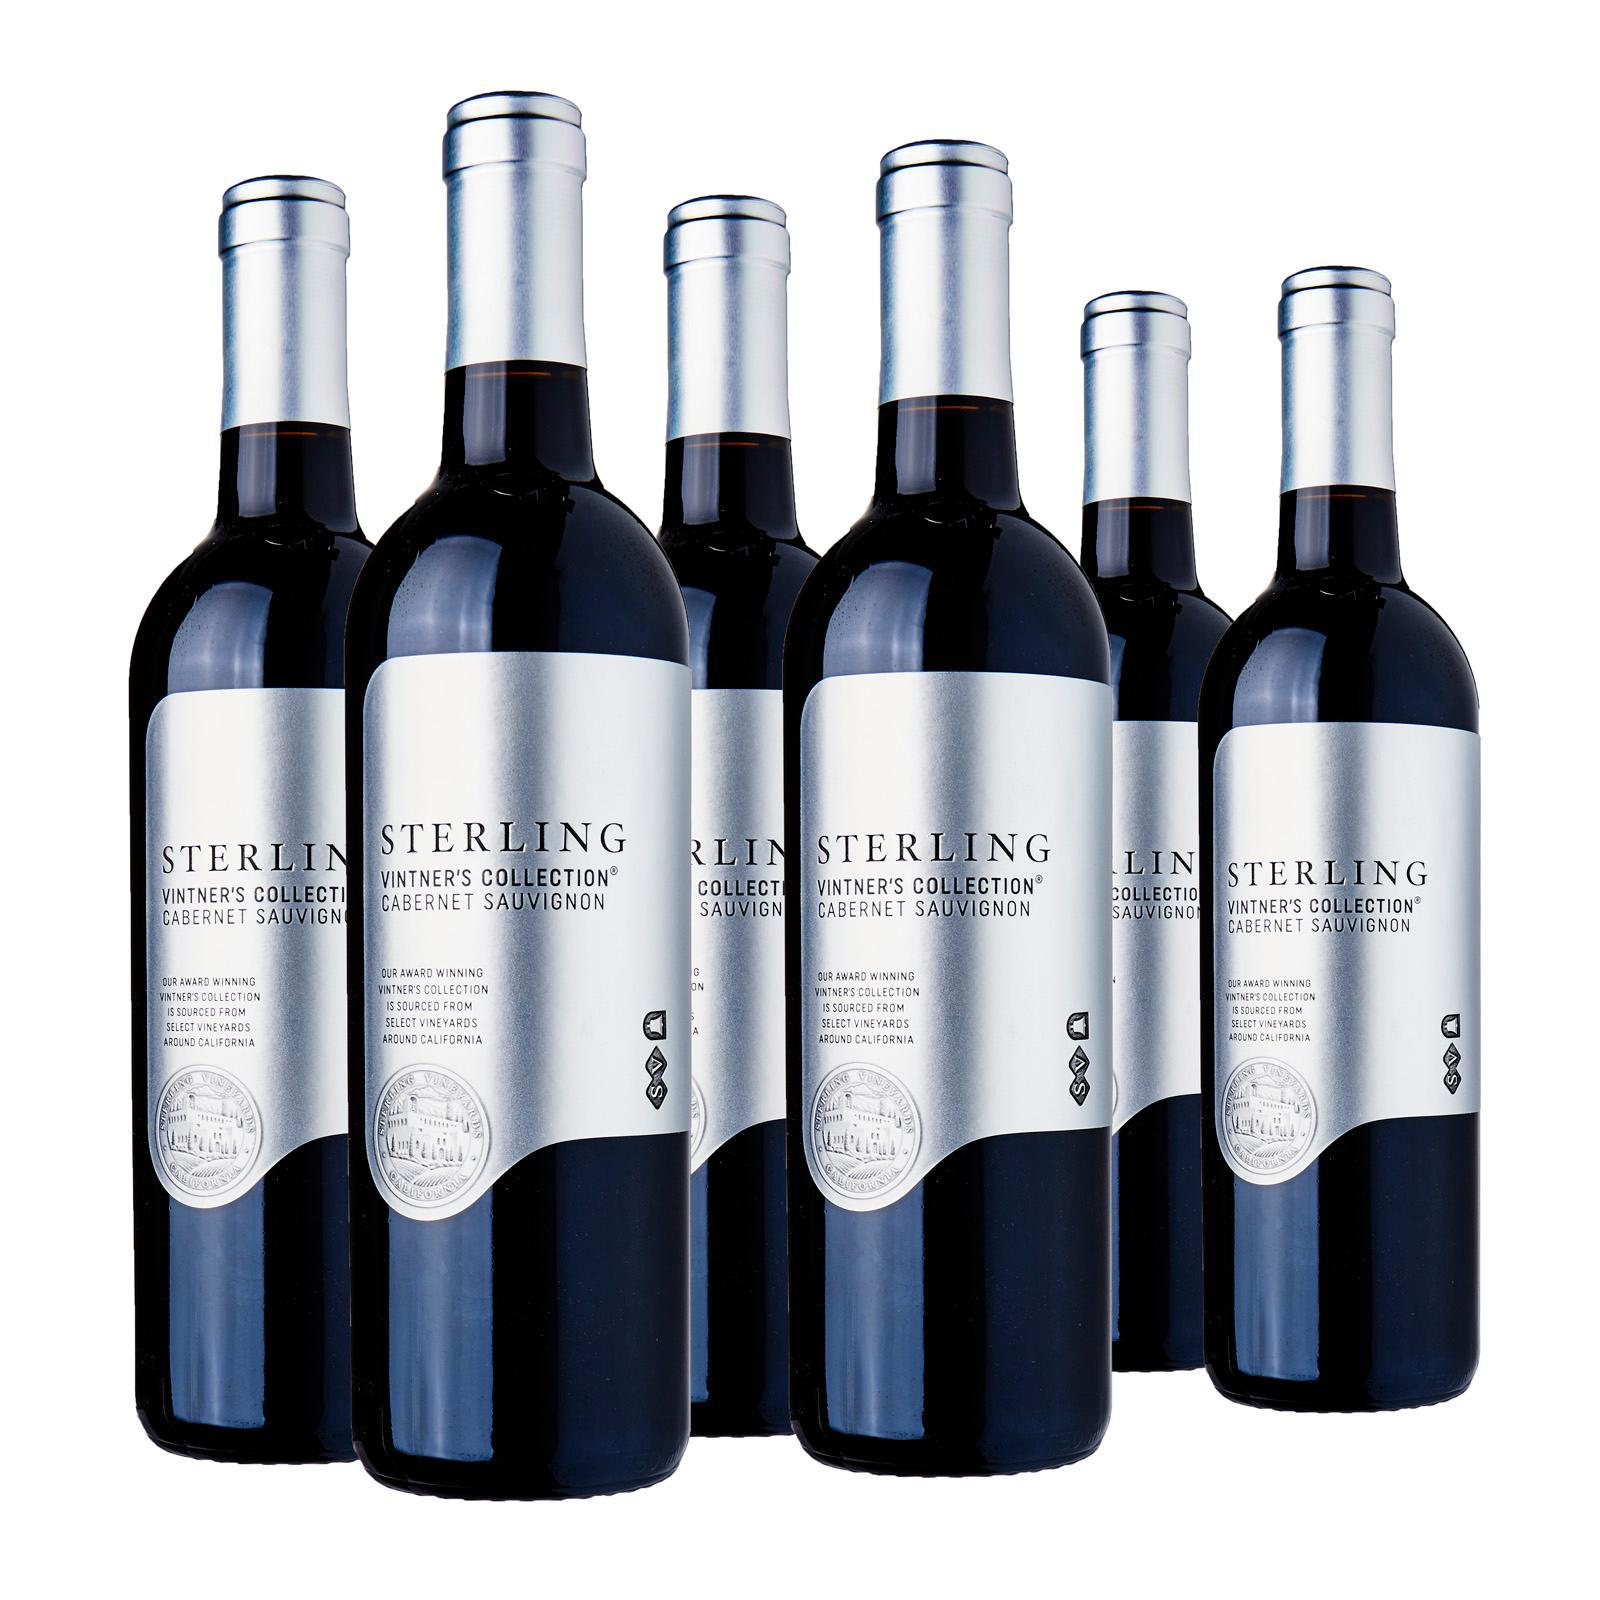 Sterling Vintner's Collection Cabernet Sauvignon - Case - By Wine Collection